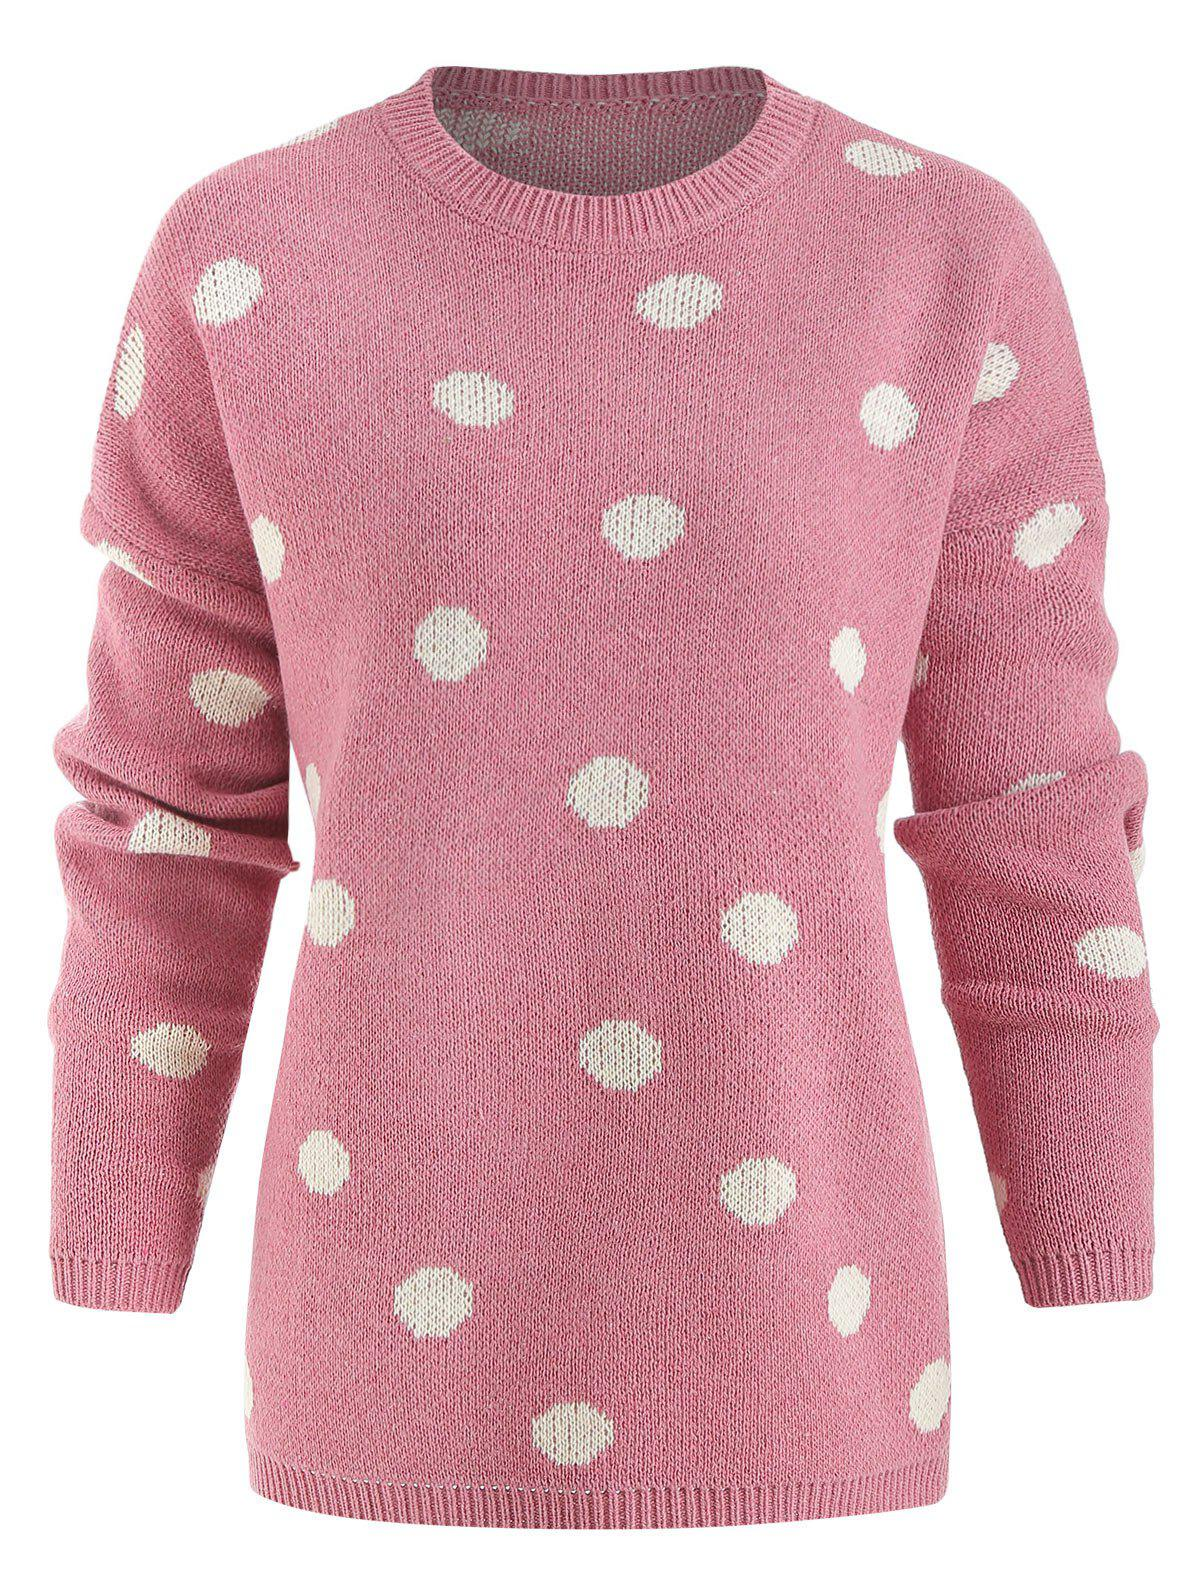 Polka Dot Oversized Pullover Sweater - PINK M